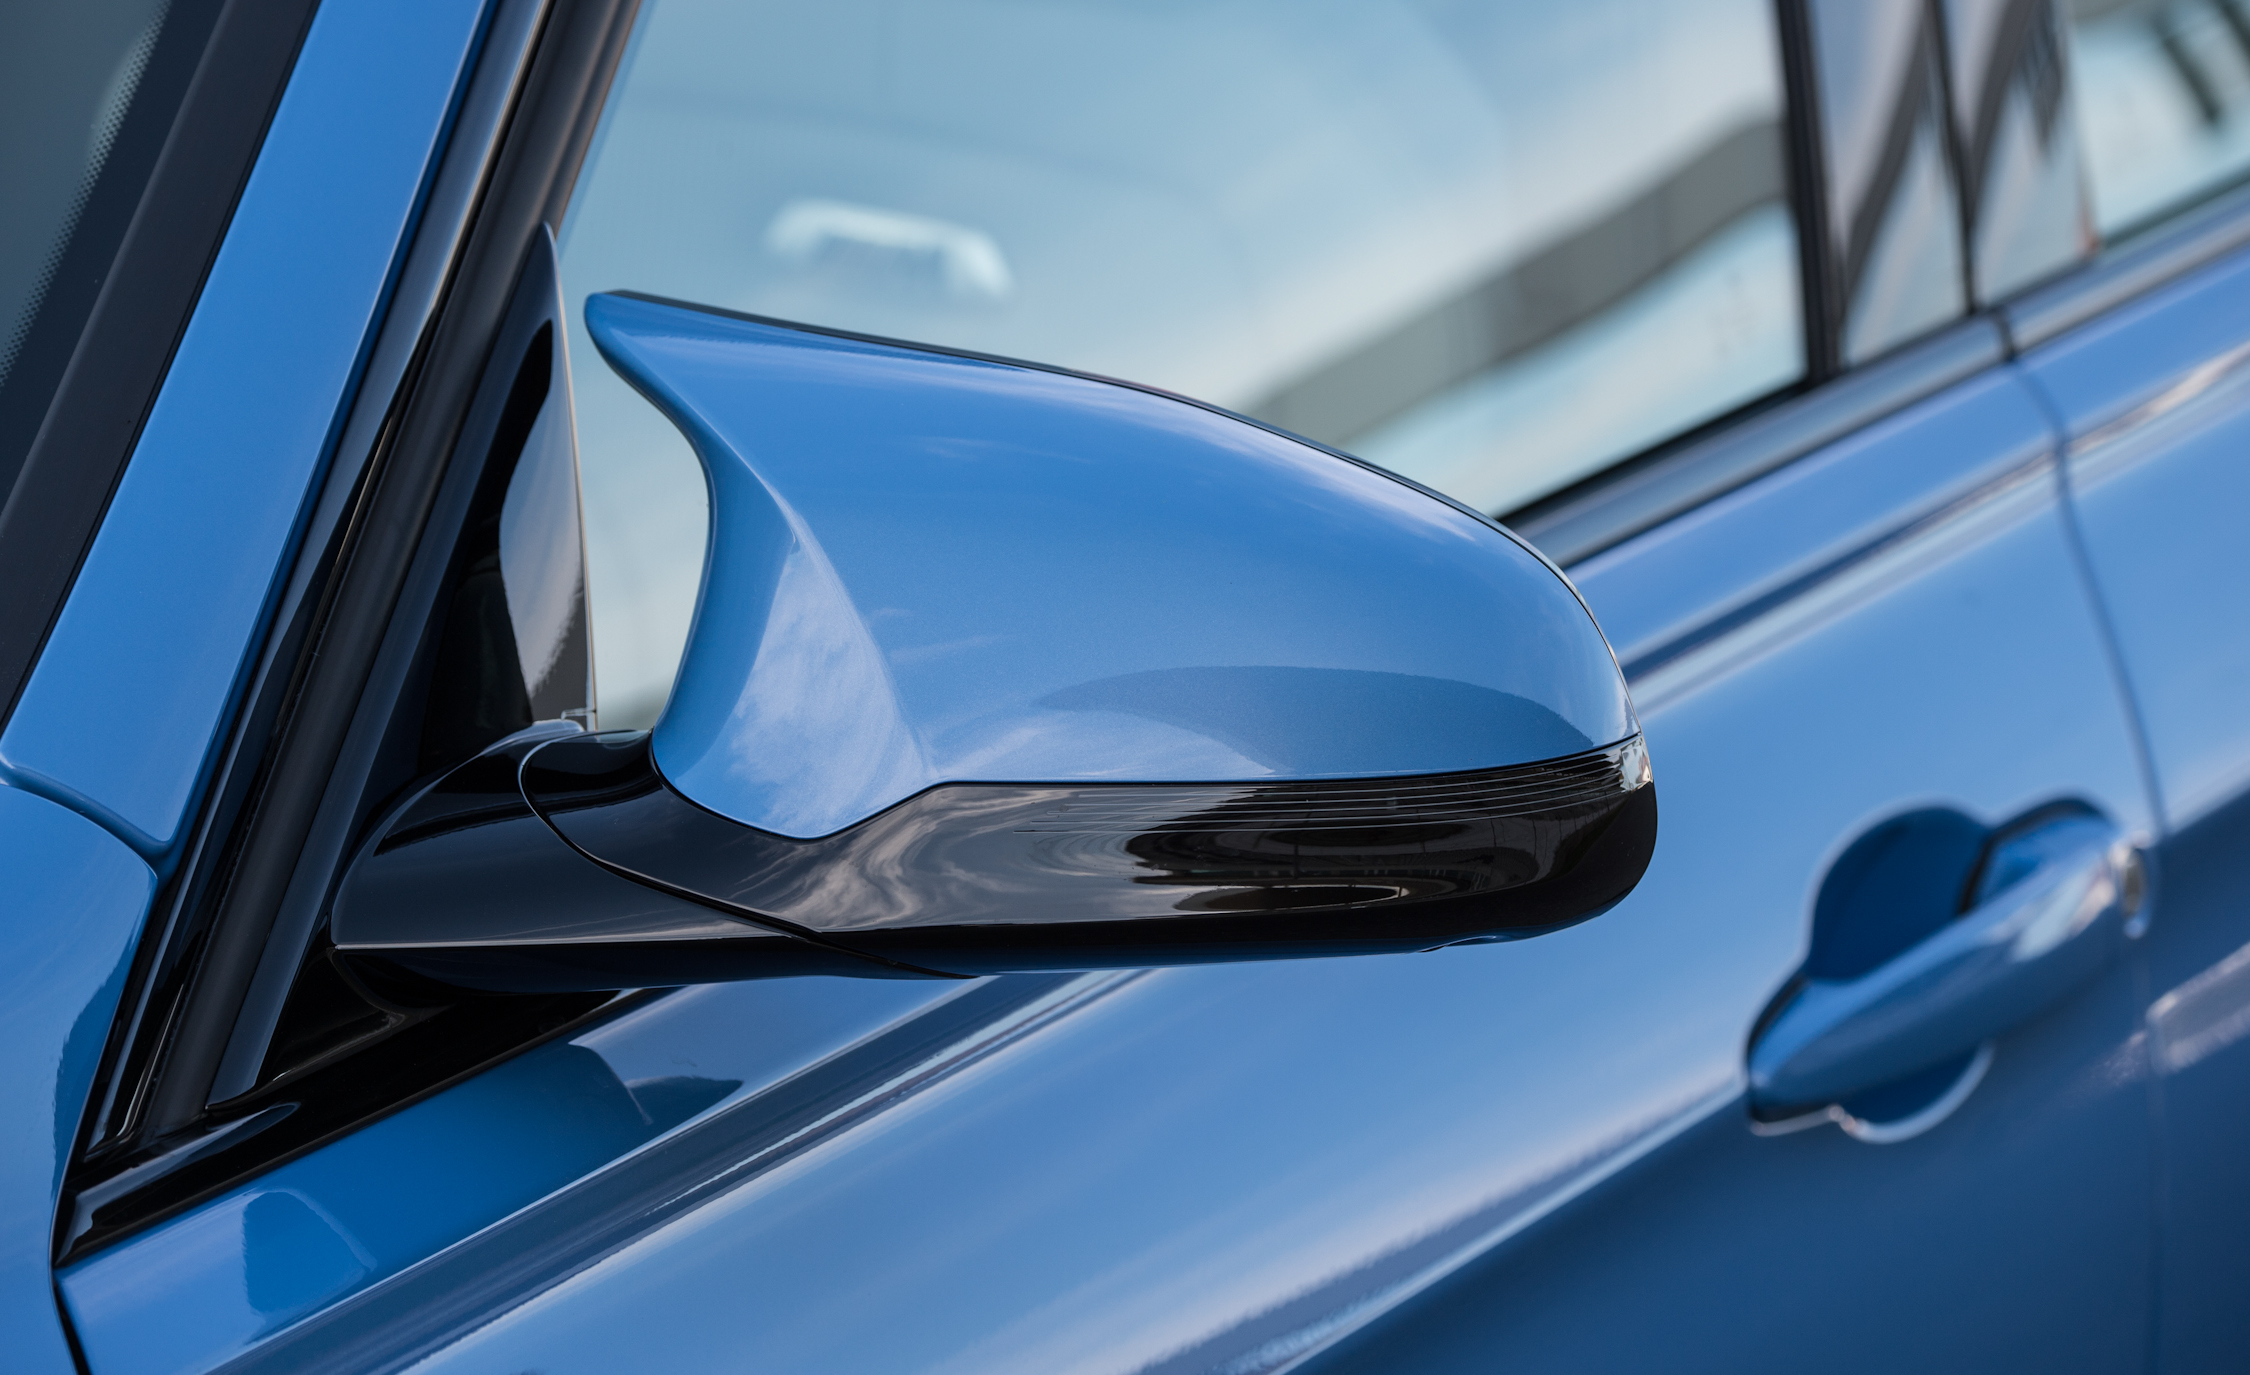 2015 BMW M3 Exterior Side-View Mirror